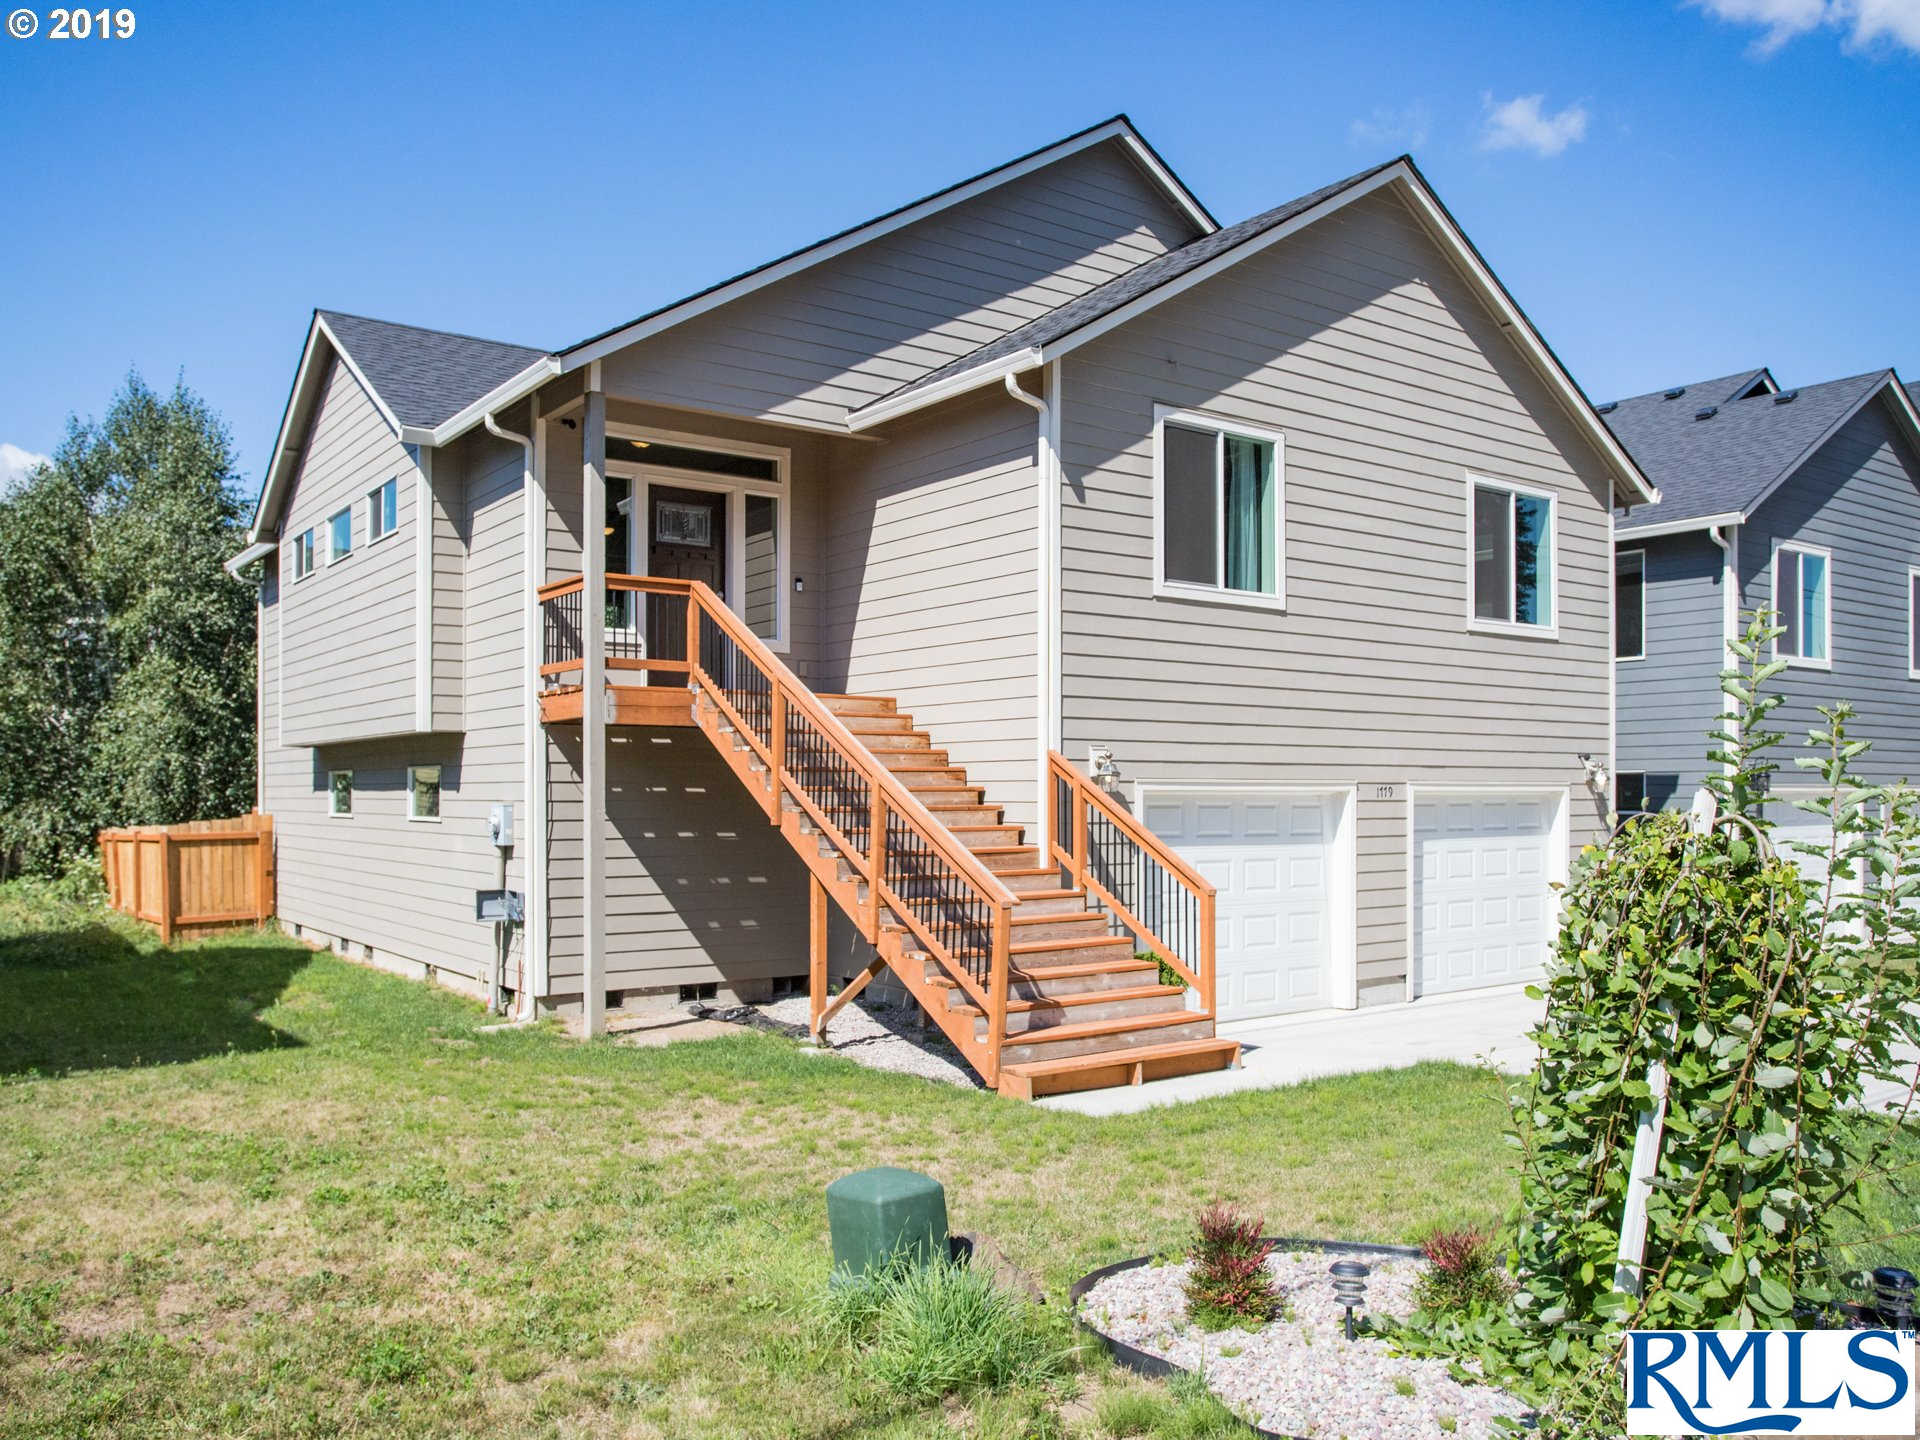 1779 Lewis River Rd, Woodland, WA 98674 now has a new price of $319,900!